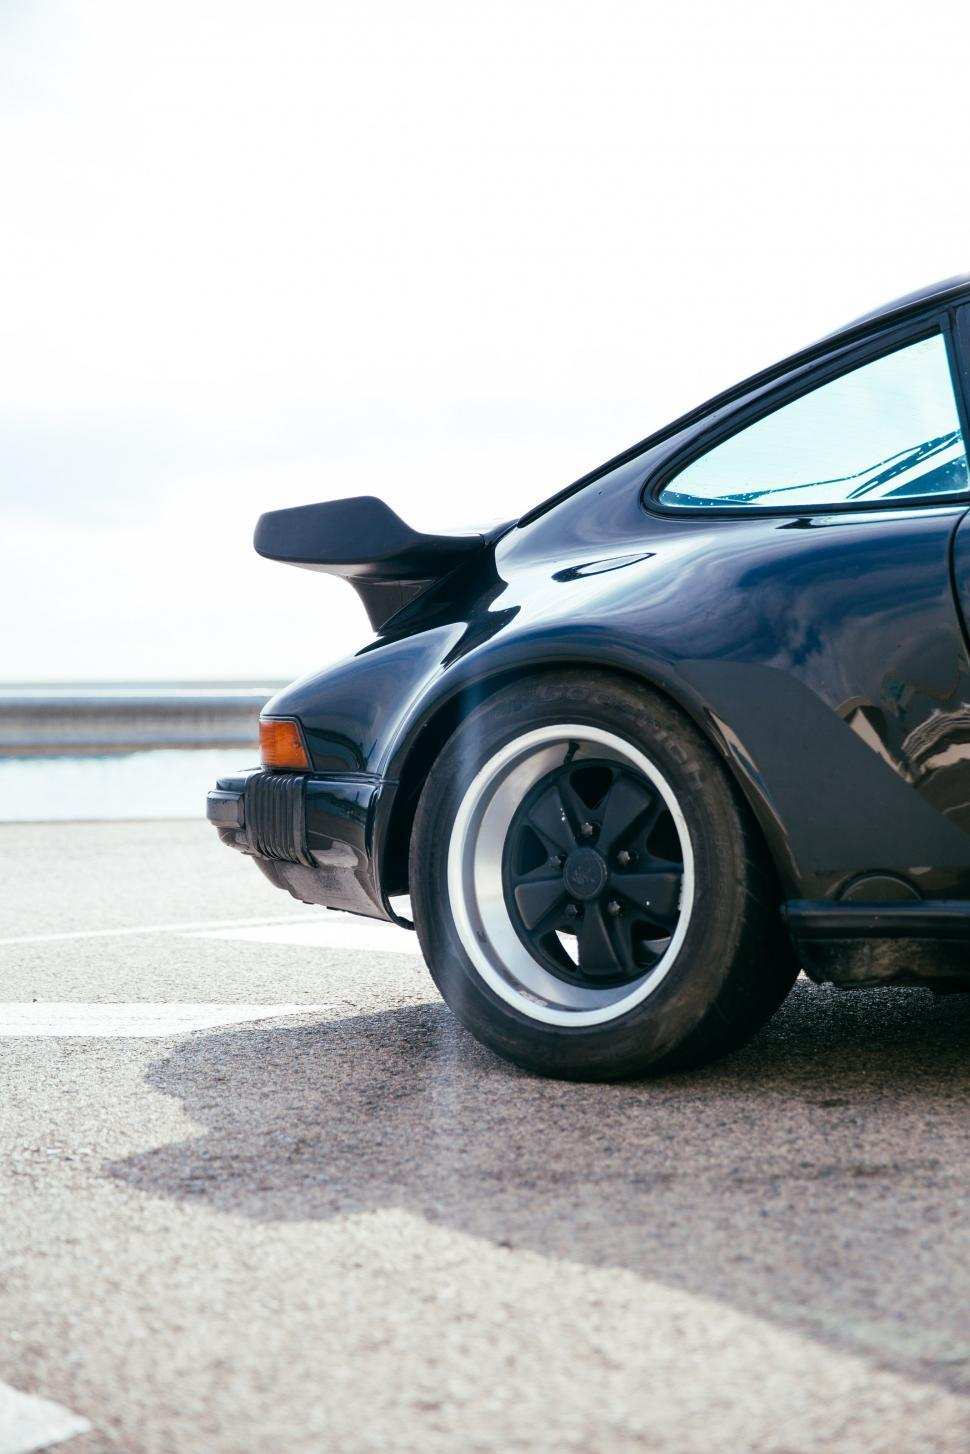 Download Free Stock HD Photo of Side view of a black sports car rear wheel and spoiler Online